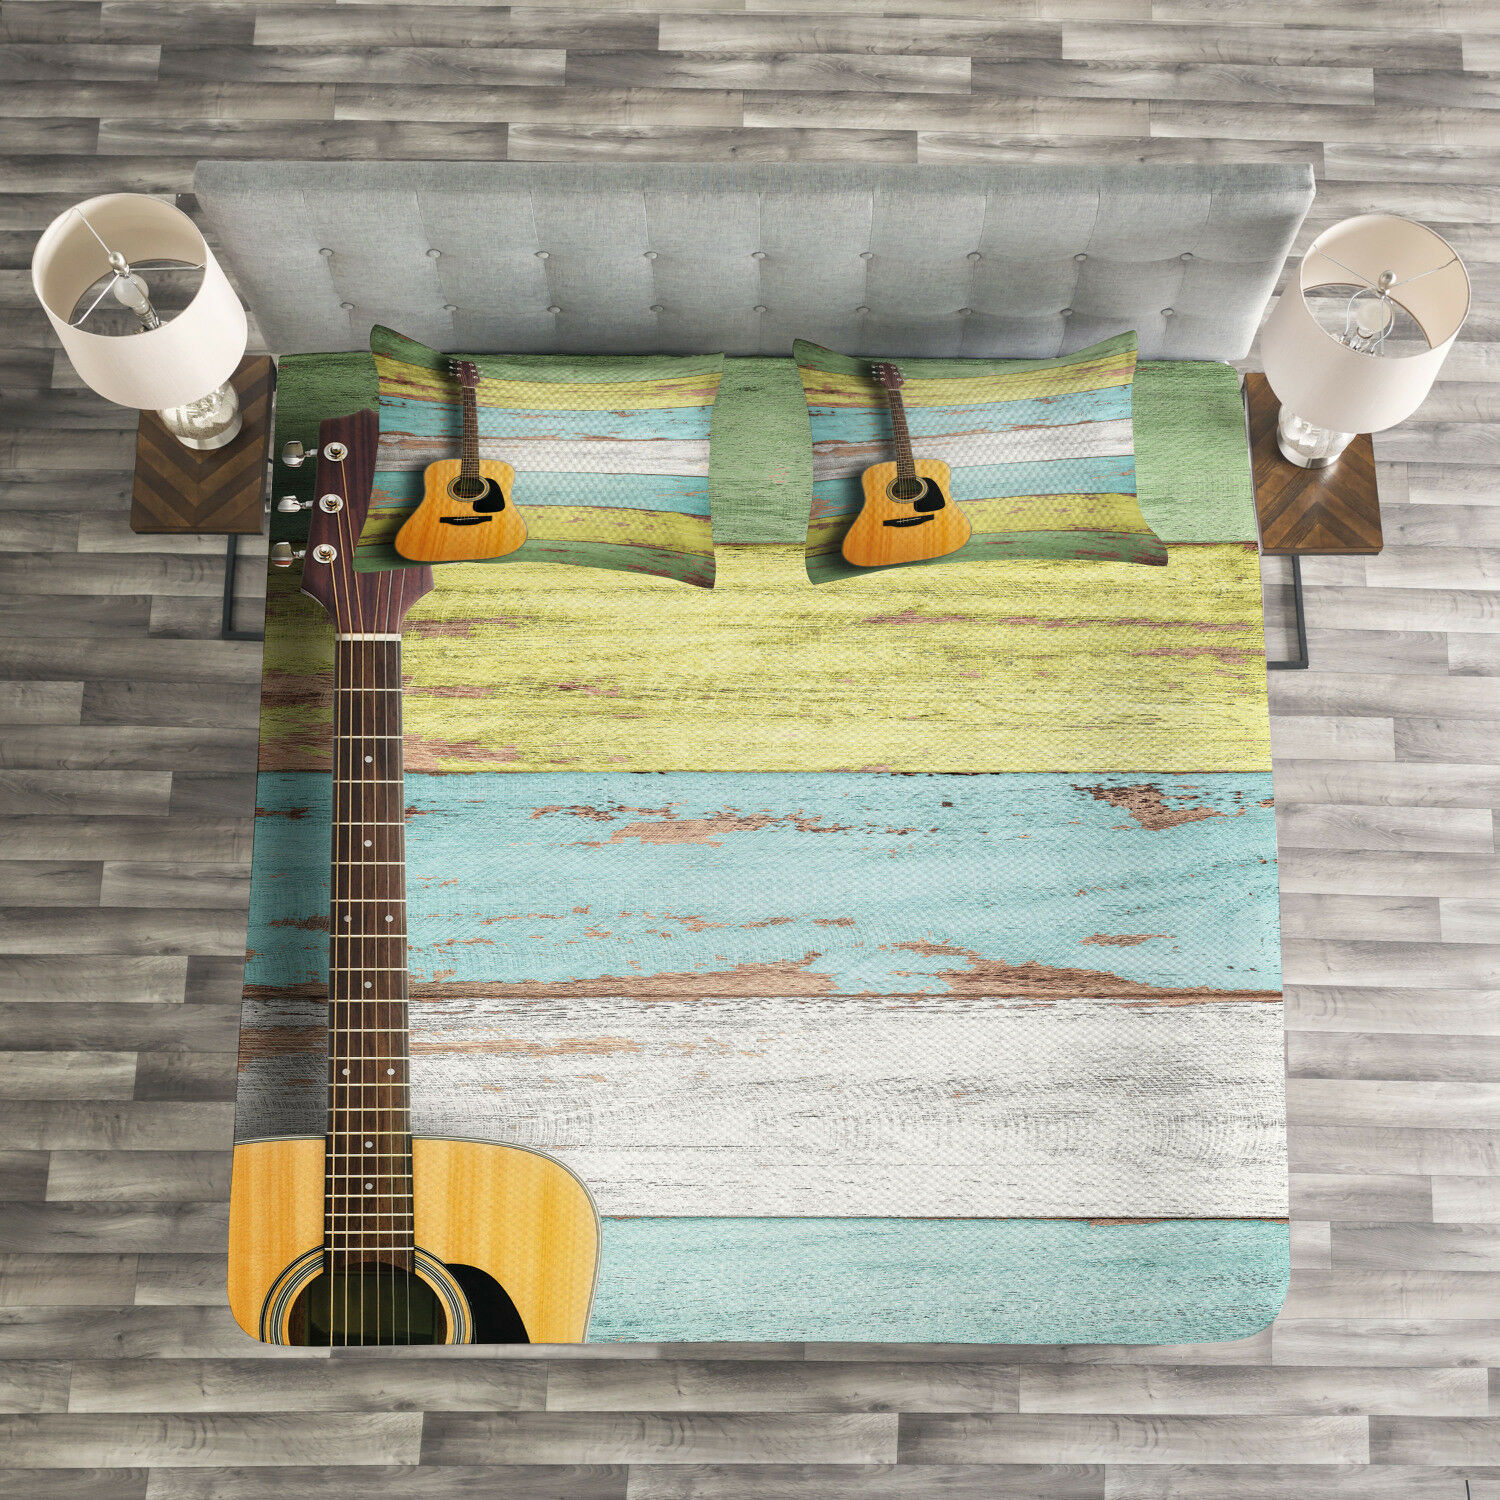 Music Quilted Bedspread & Pillow Shams Set, Aged Wooden Planks Rustic Print